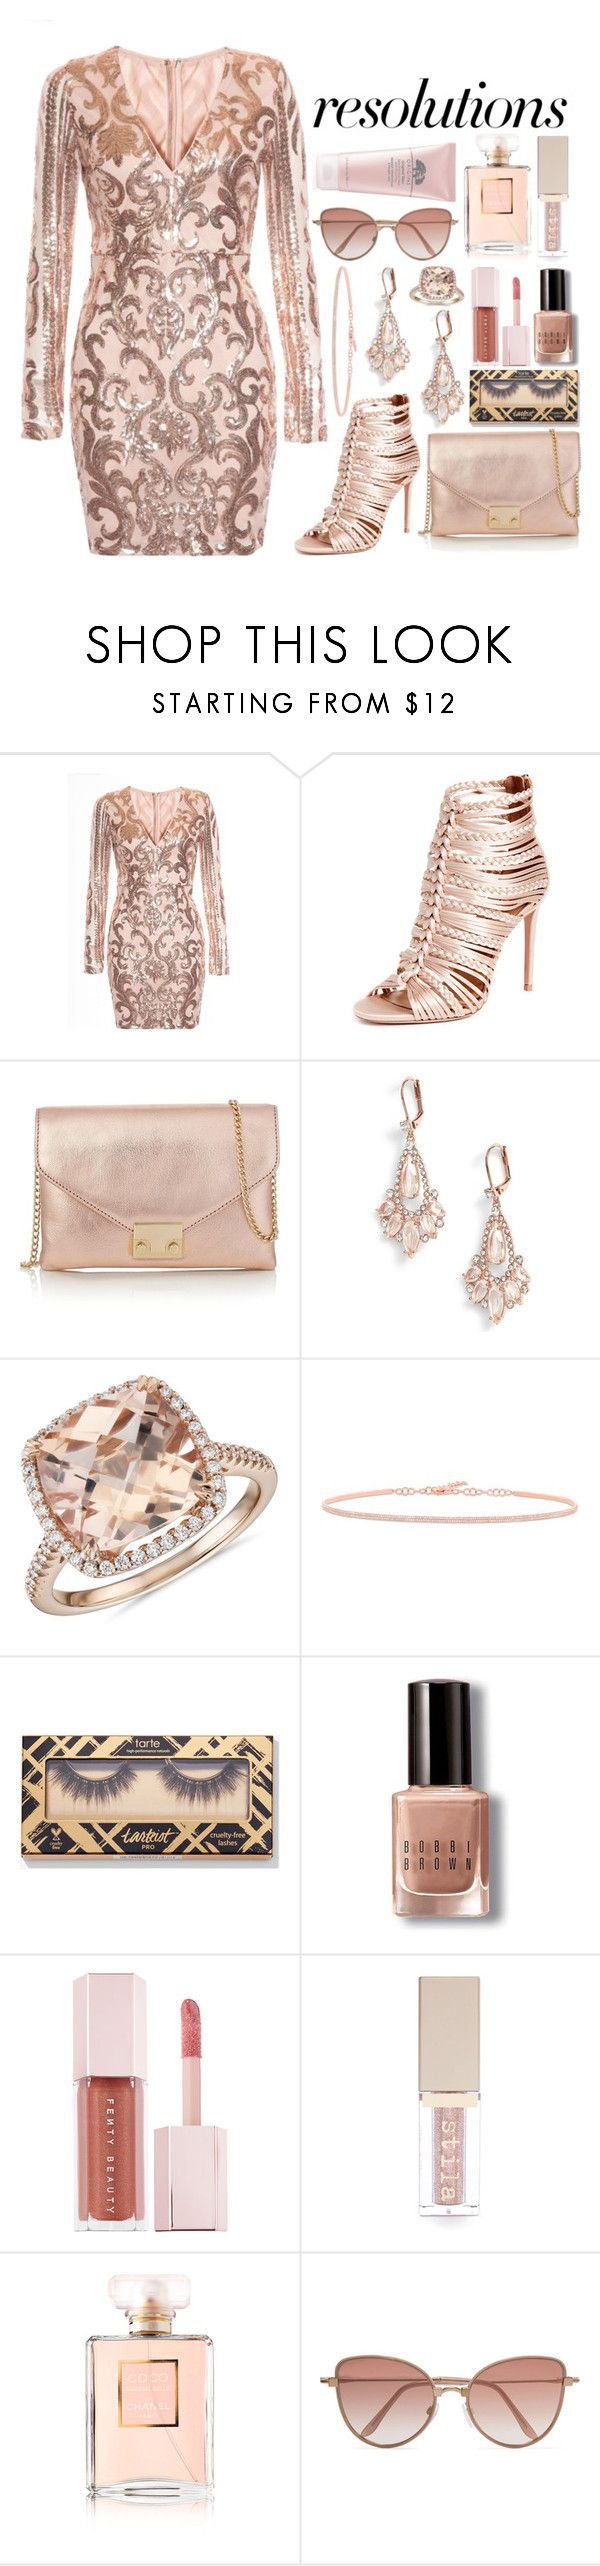 """""""#PolyPresents: New Year's Resolutions"""" by downeastgirl88 ❤ liked on Polyvore featuring Aquazzura, Loeffler Randall, Kate Spade, Blue Nile, Bobbi Brown Cosmetics, Puma, Stila, Chanel, Cutler and Gross and Origins"""